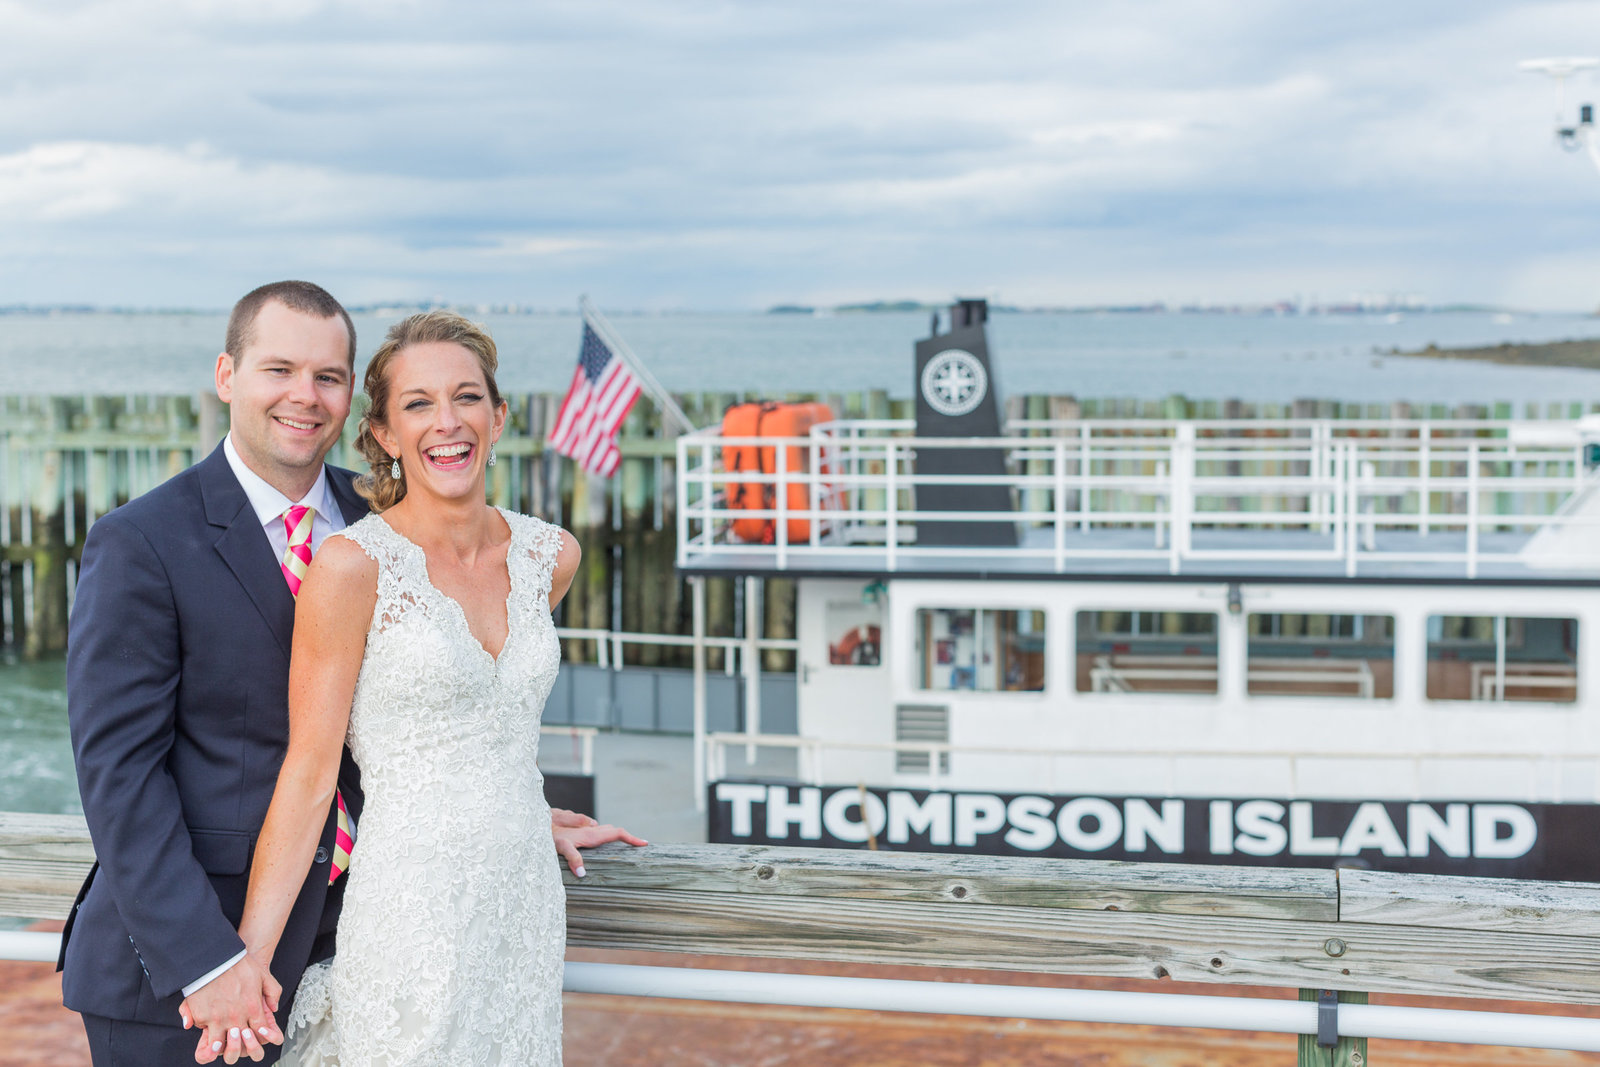 ThompsonIsland_WeddingPhotography_Michelle Kaye Photography-11884